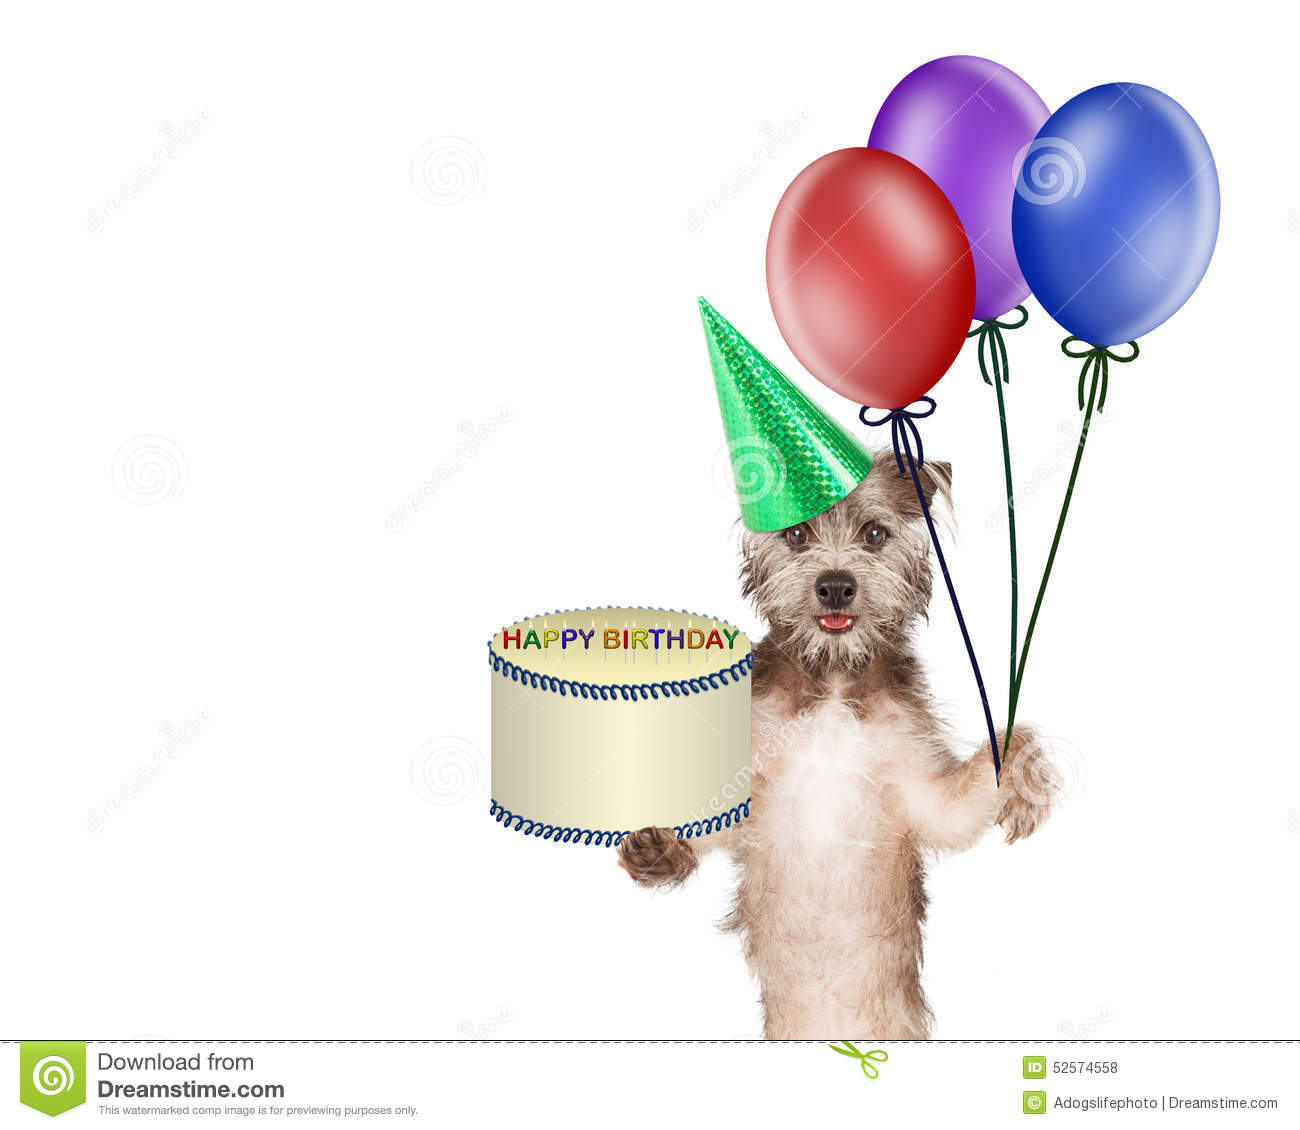 Cute And Happy Dog Carrying A Birthday Cake Colorful Balloons Image Has Copyspace Room For Text